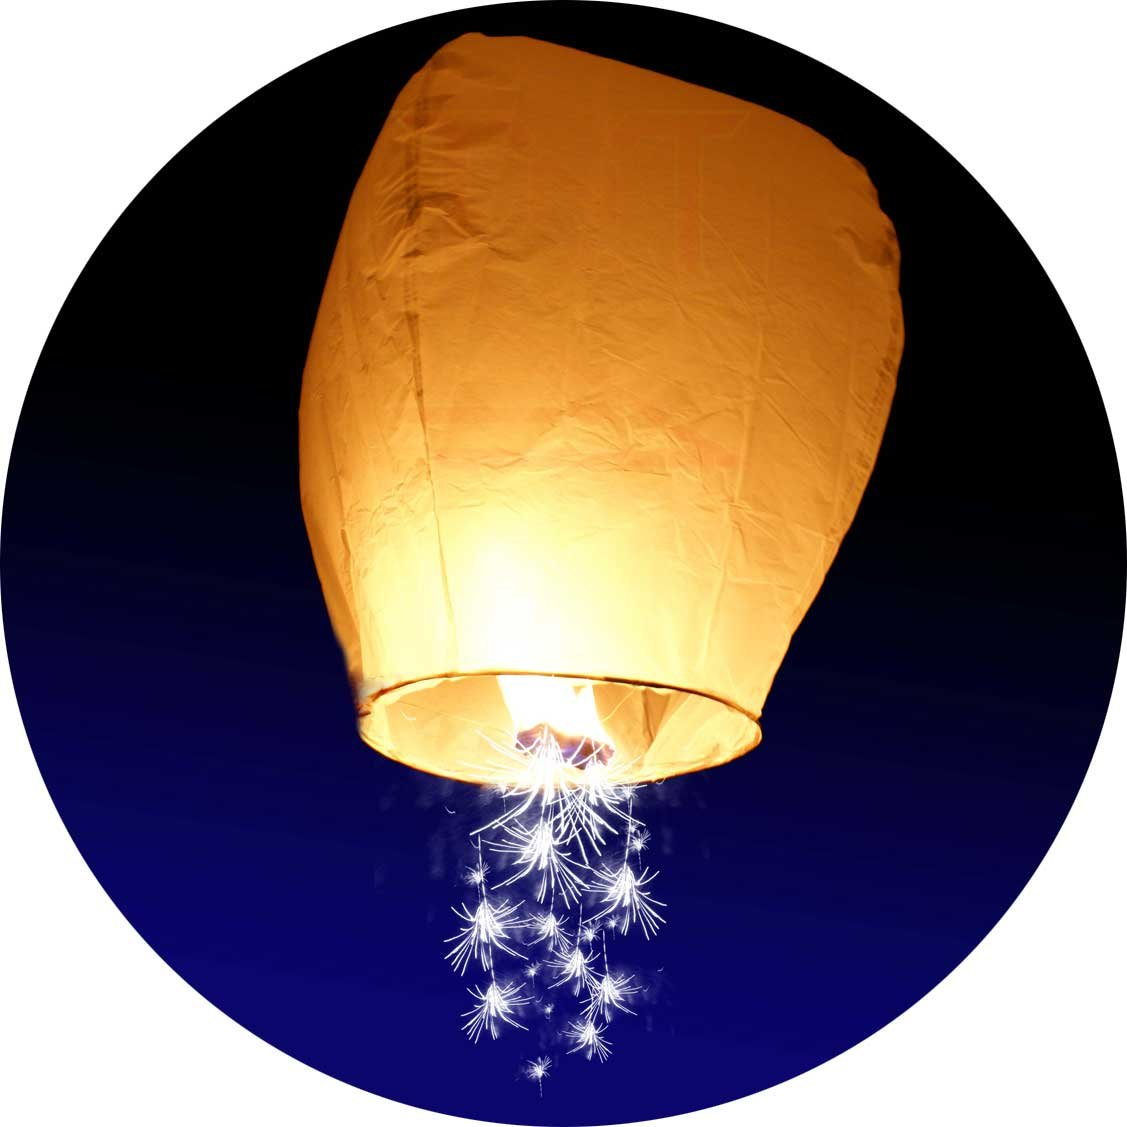 10-Pack - Sparkler Chinese Lantern - Make a Wish on a Shooting Star Sky Lanterns - Eco-Friendly Biodegradable Magical for Birthday Party or Wedding - Big Wishing Balloons - by TnT Sales in Michigan